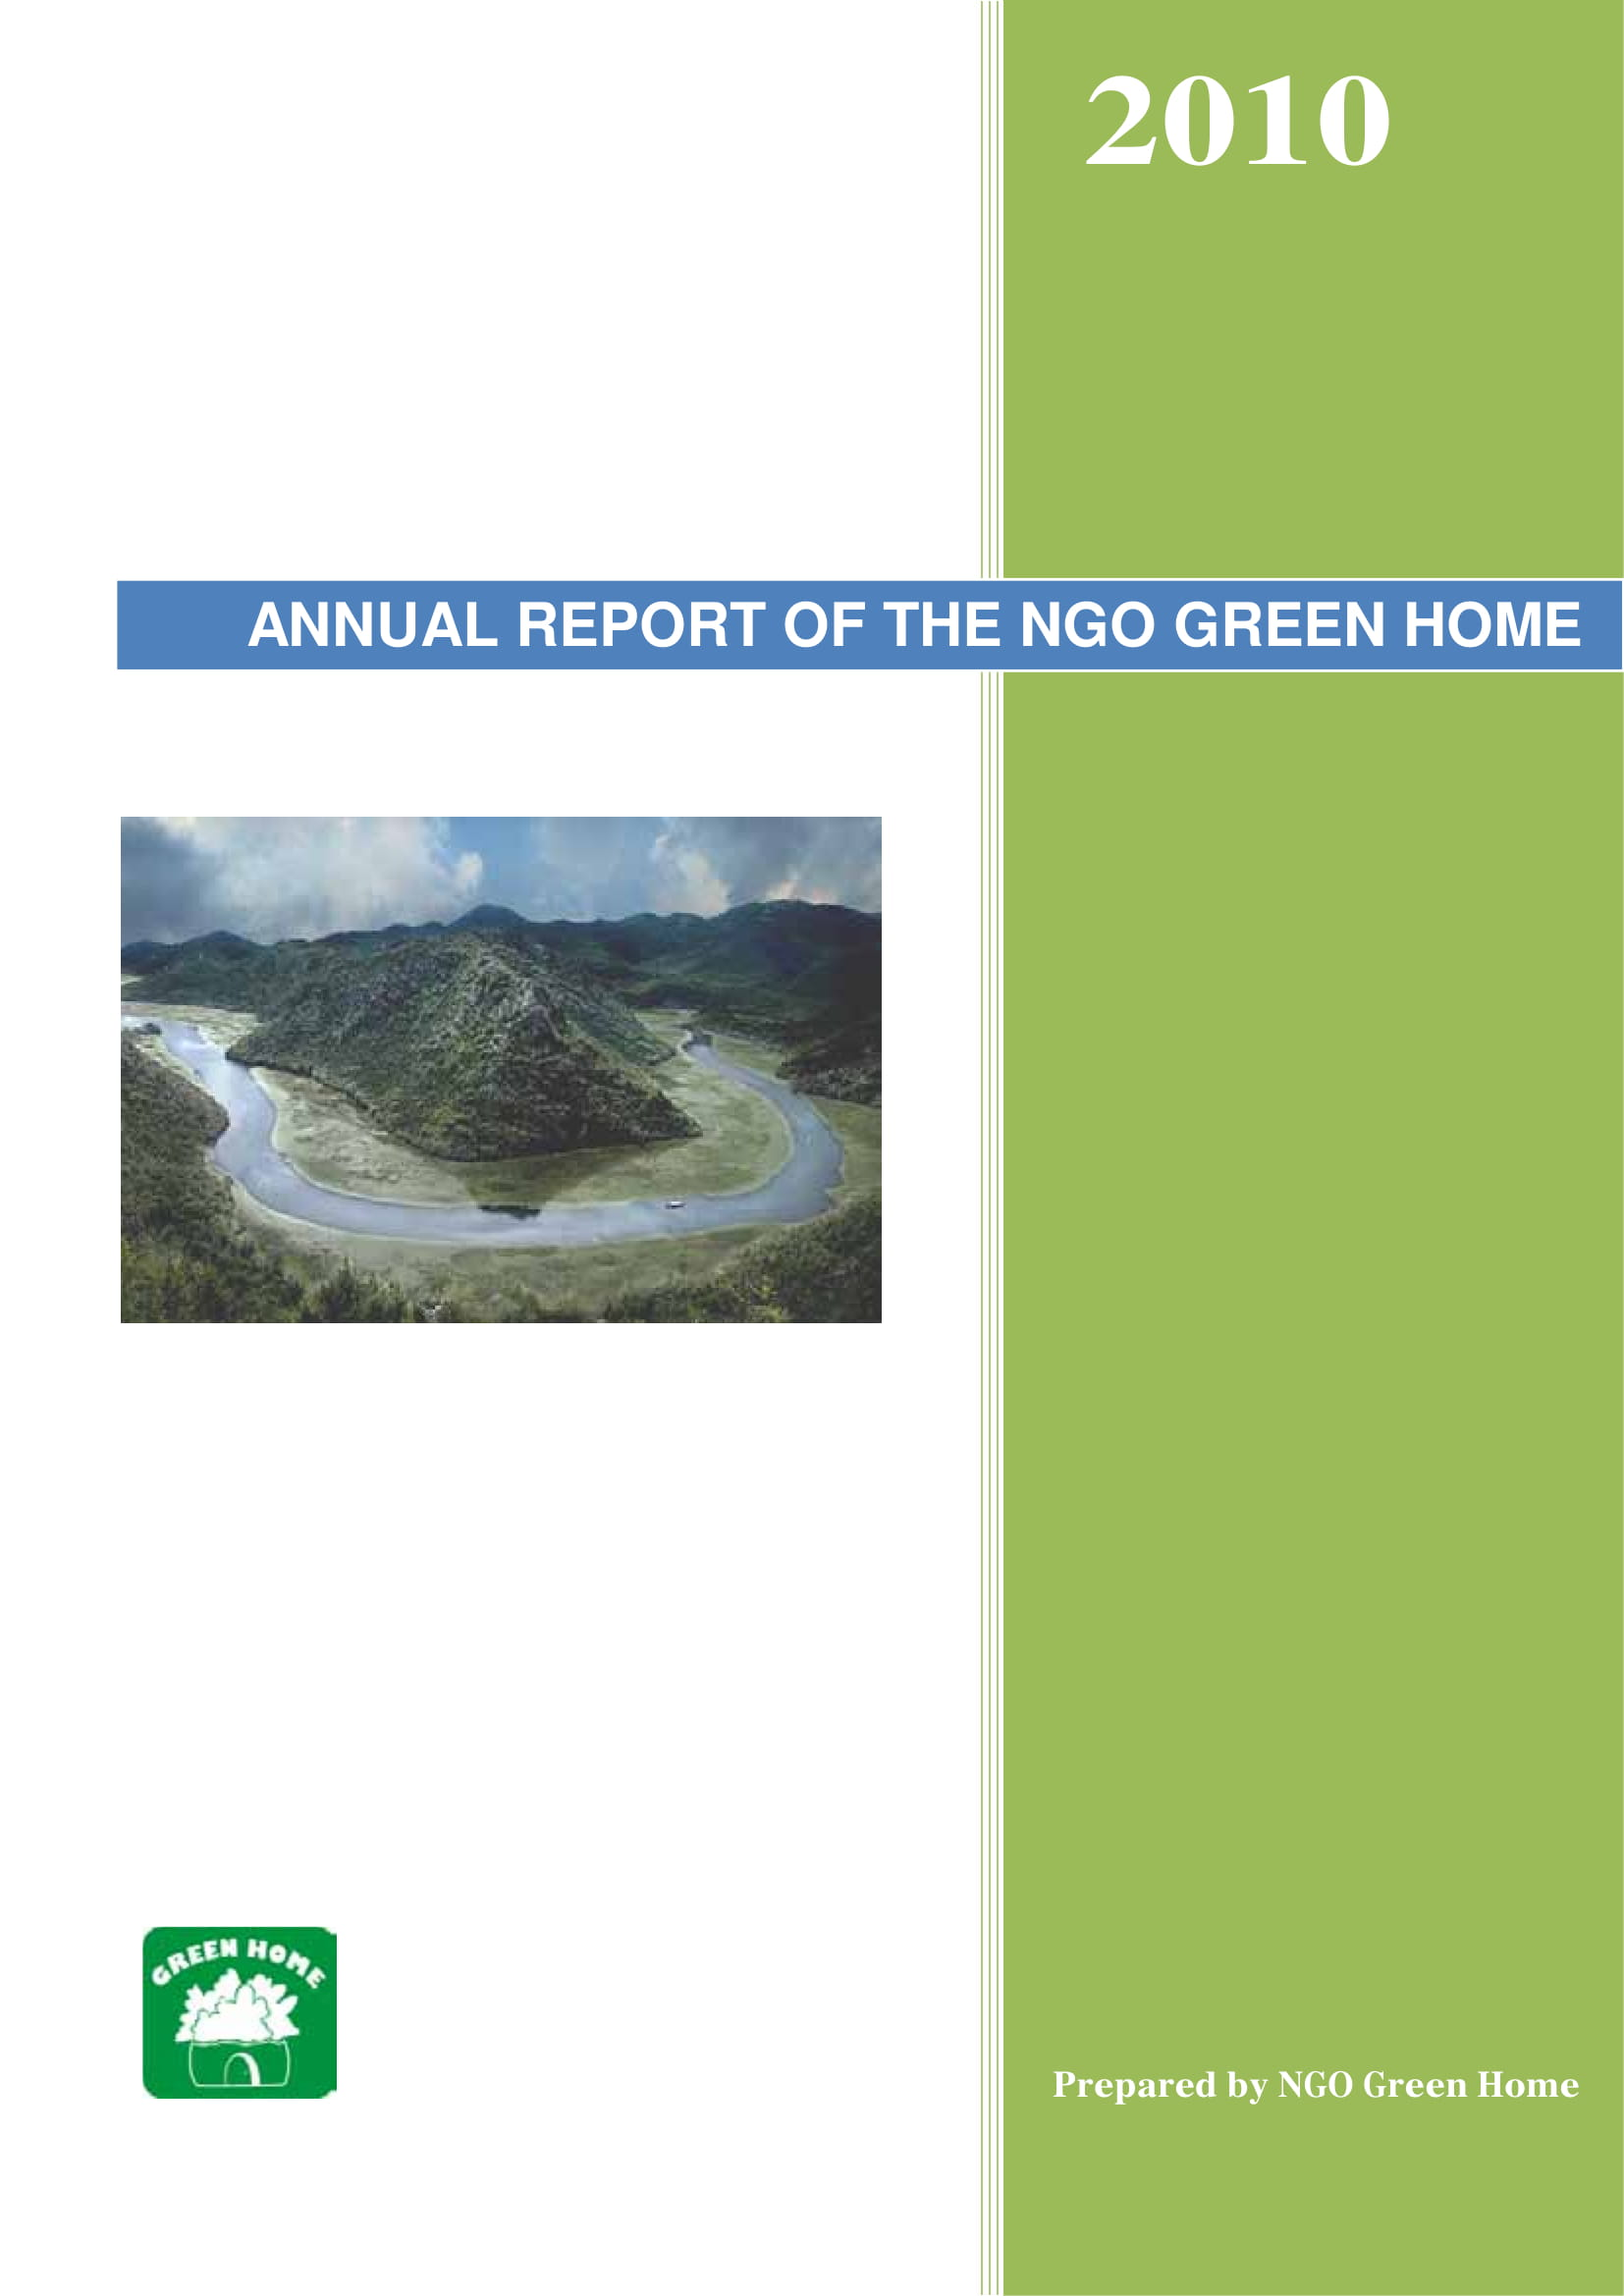 green home ngo annual report example